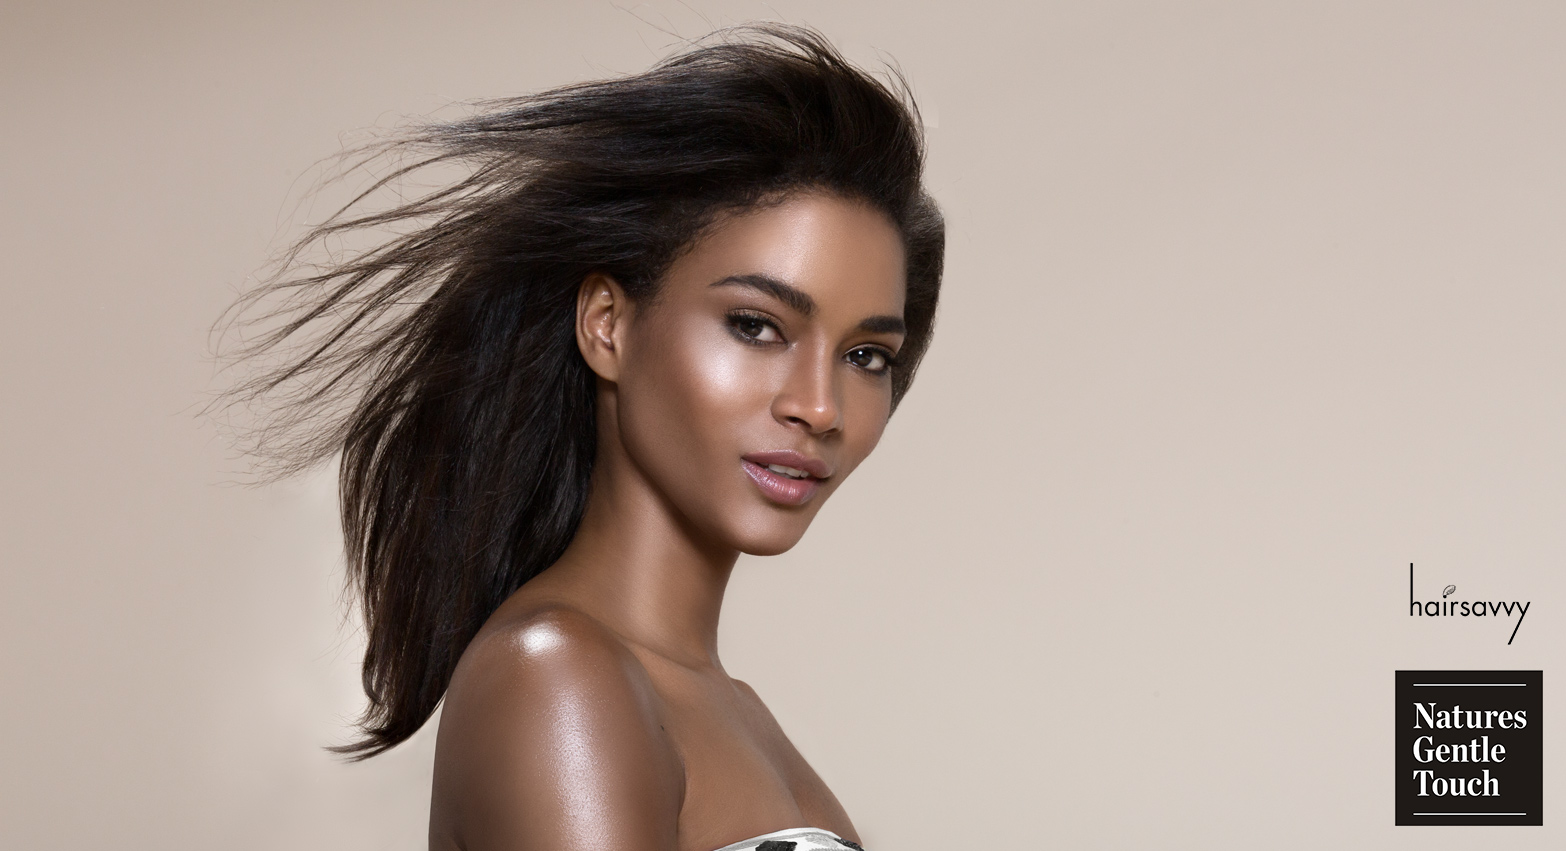 Ex Miss Universe Leila Lopes In Campaign Photos For Hair